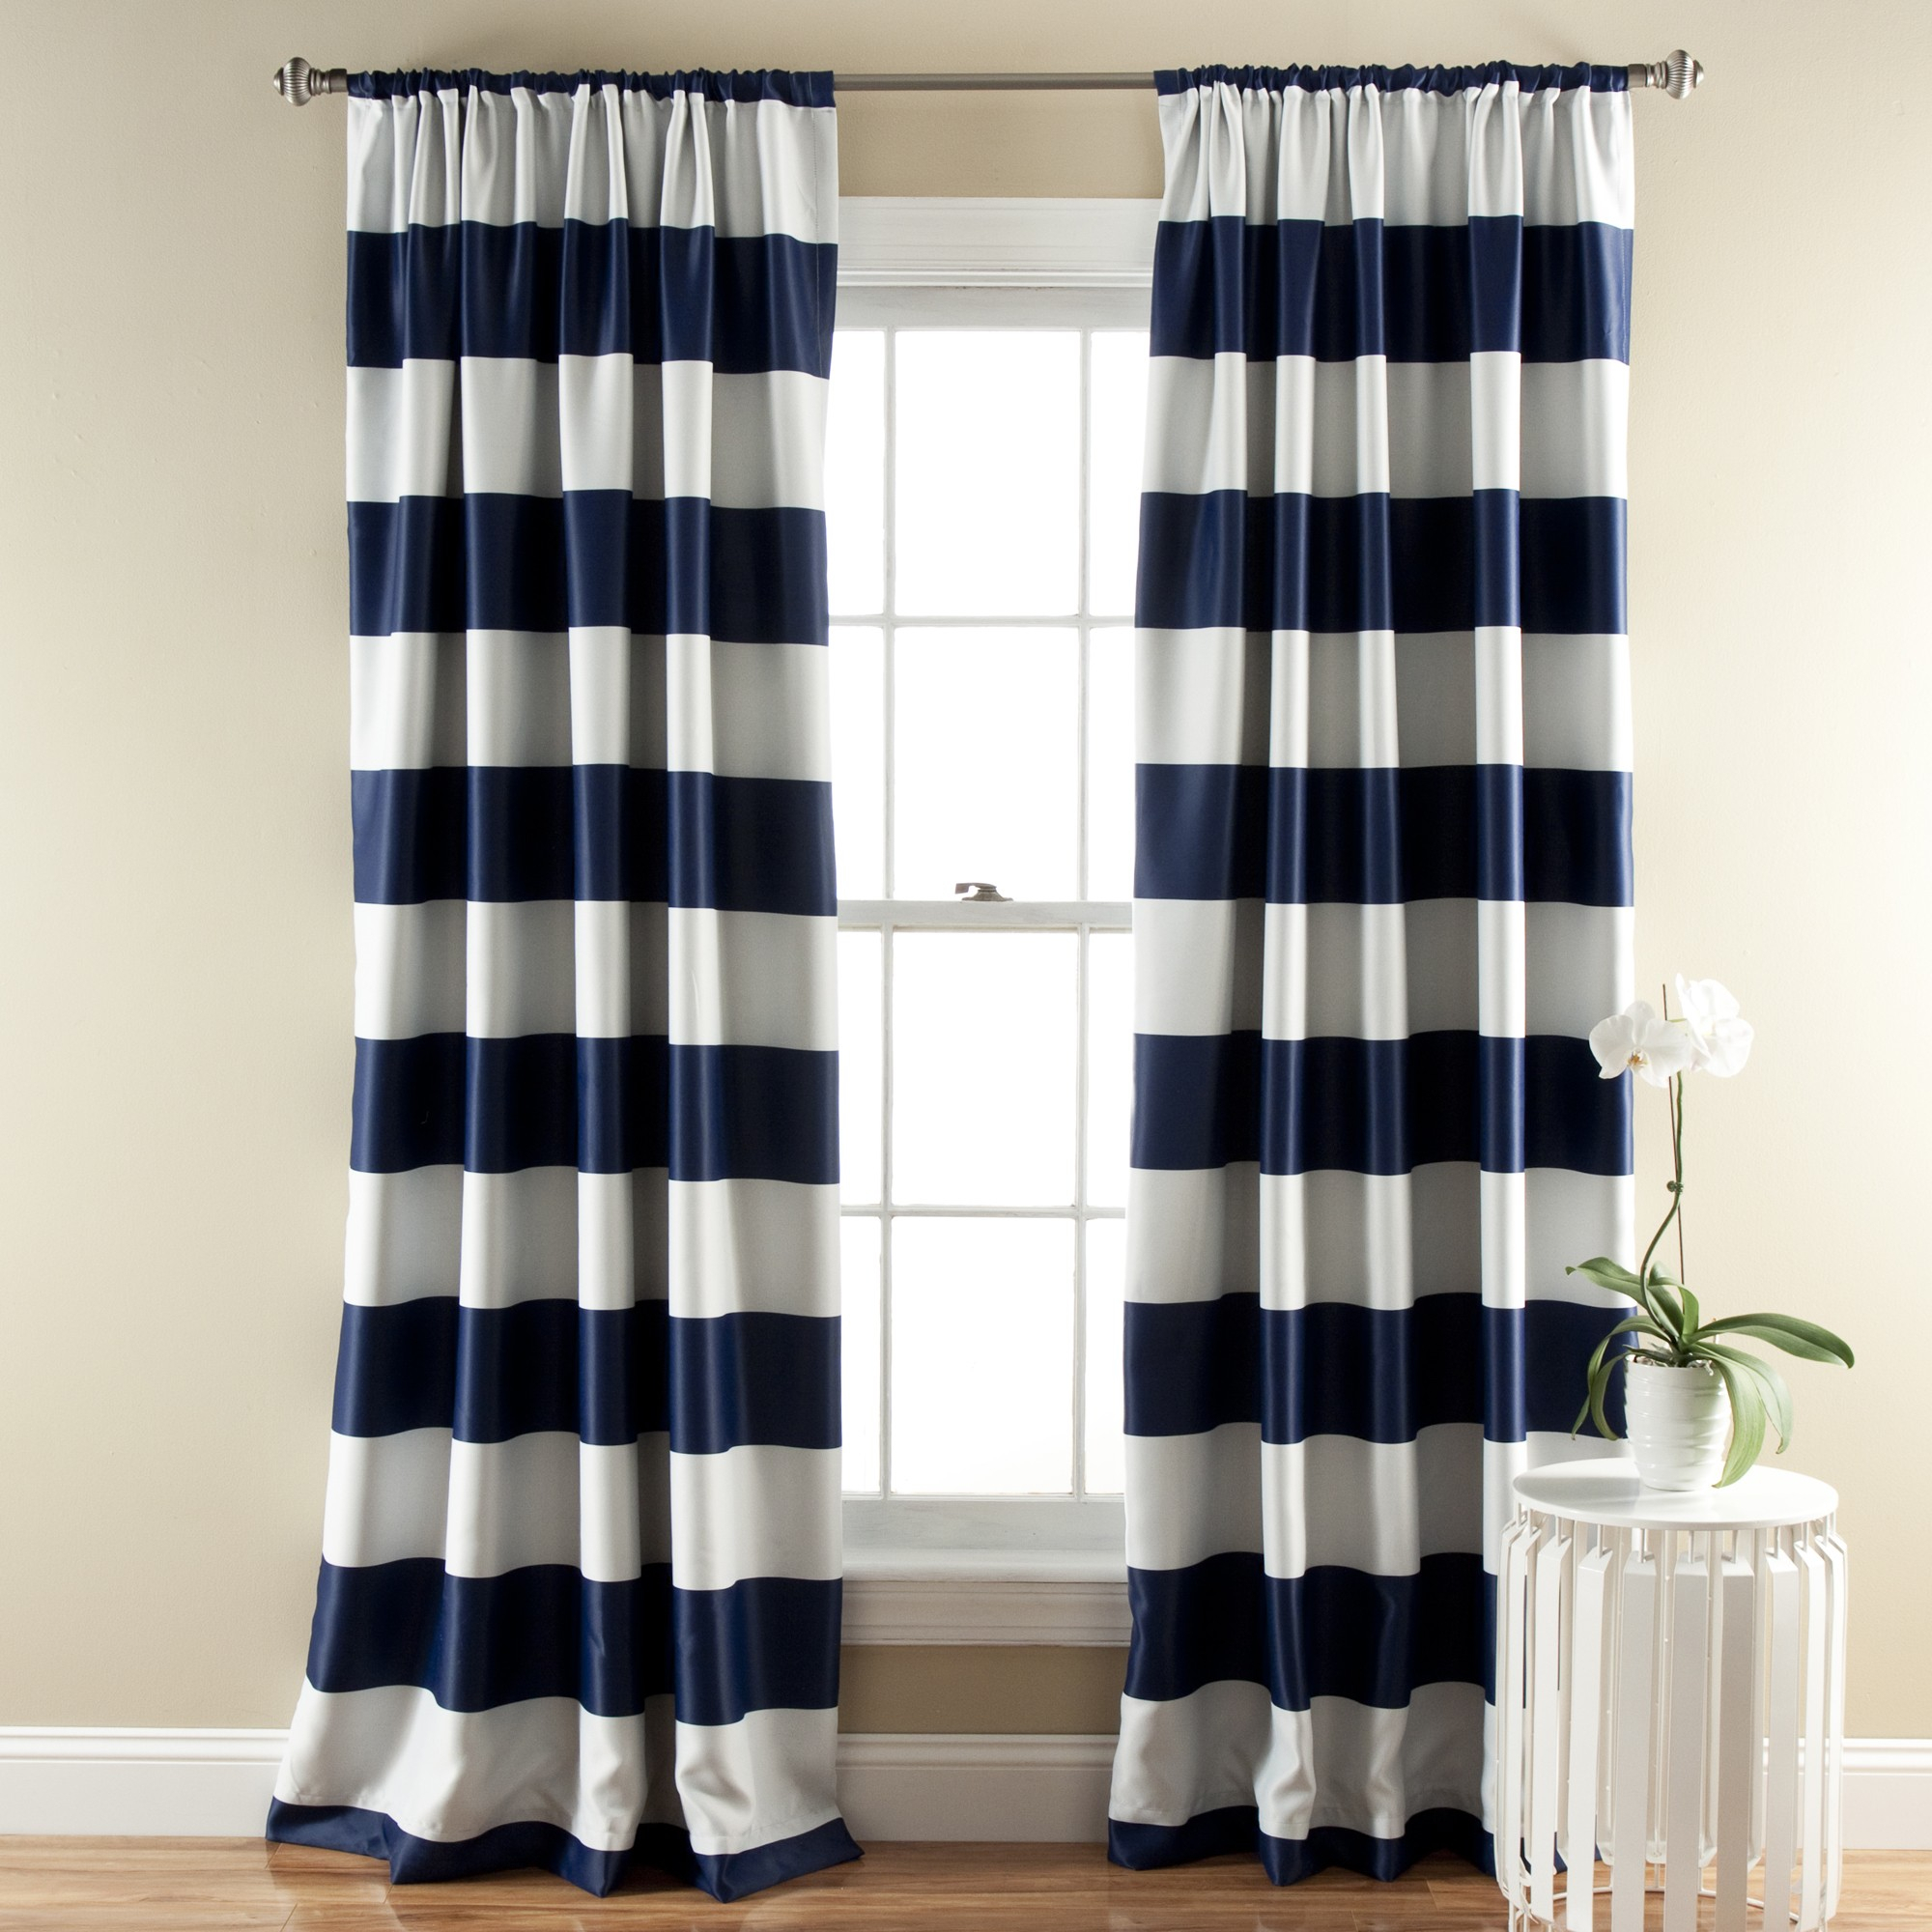 Lush Decor Stripe Blackout Navy Window Curtain Set Of 2 For Room Darkening Window Curtain Panel Pairs (View 18 of 20)